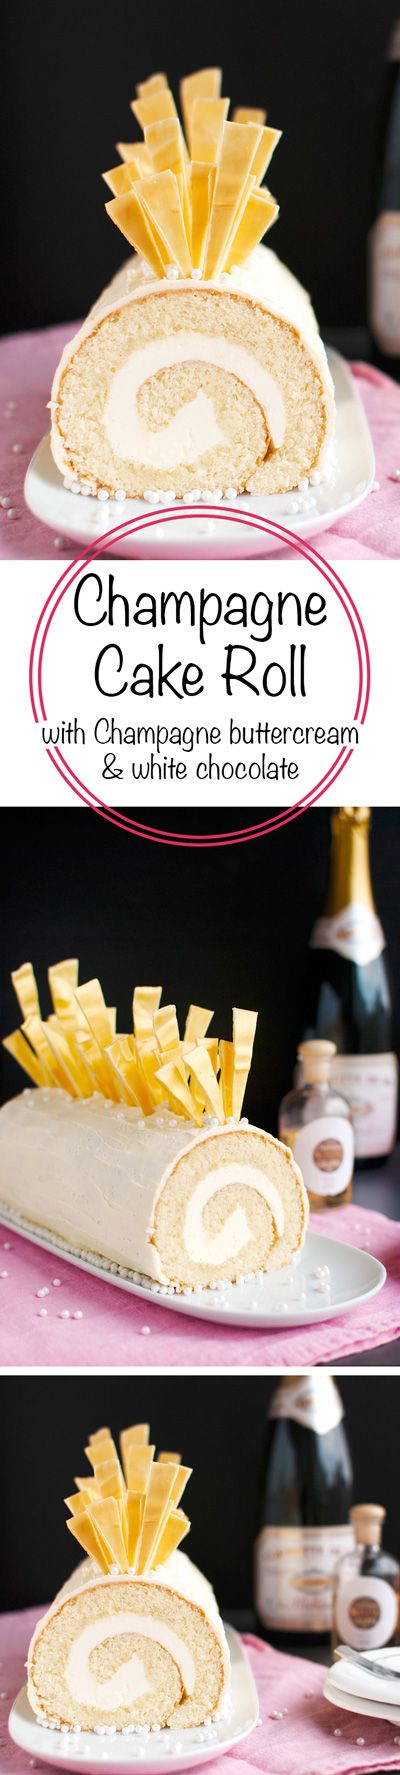 Champagne Cake Roll - A Champagne flavored cake roll, filled with Champagne buttercream, coated in white chocolate ganache, and topped with amazing white chocolate shards. With step-by-step photos. Impress your guests!   thetoughcookie.com